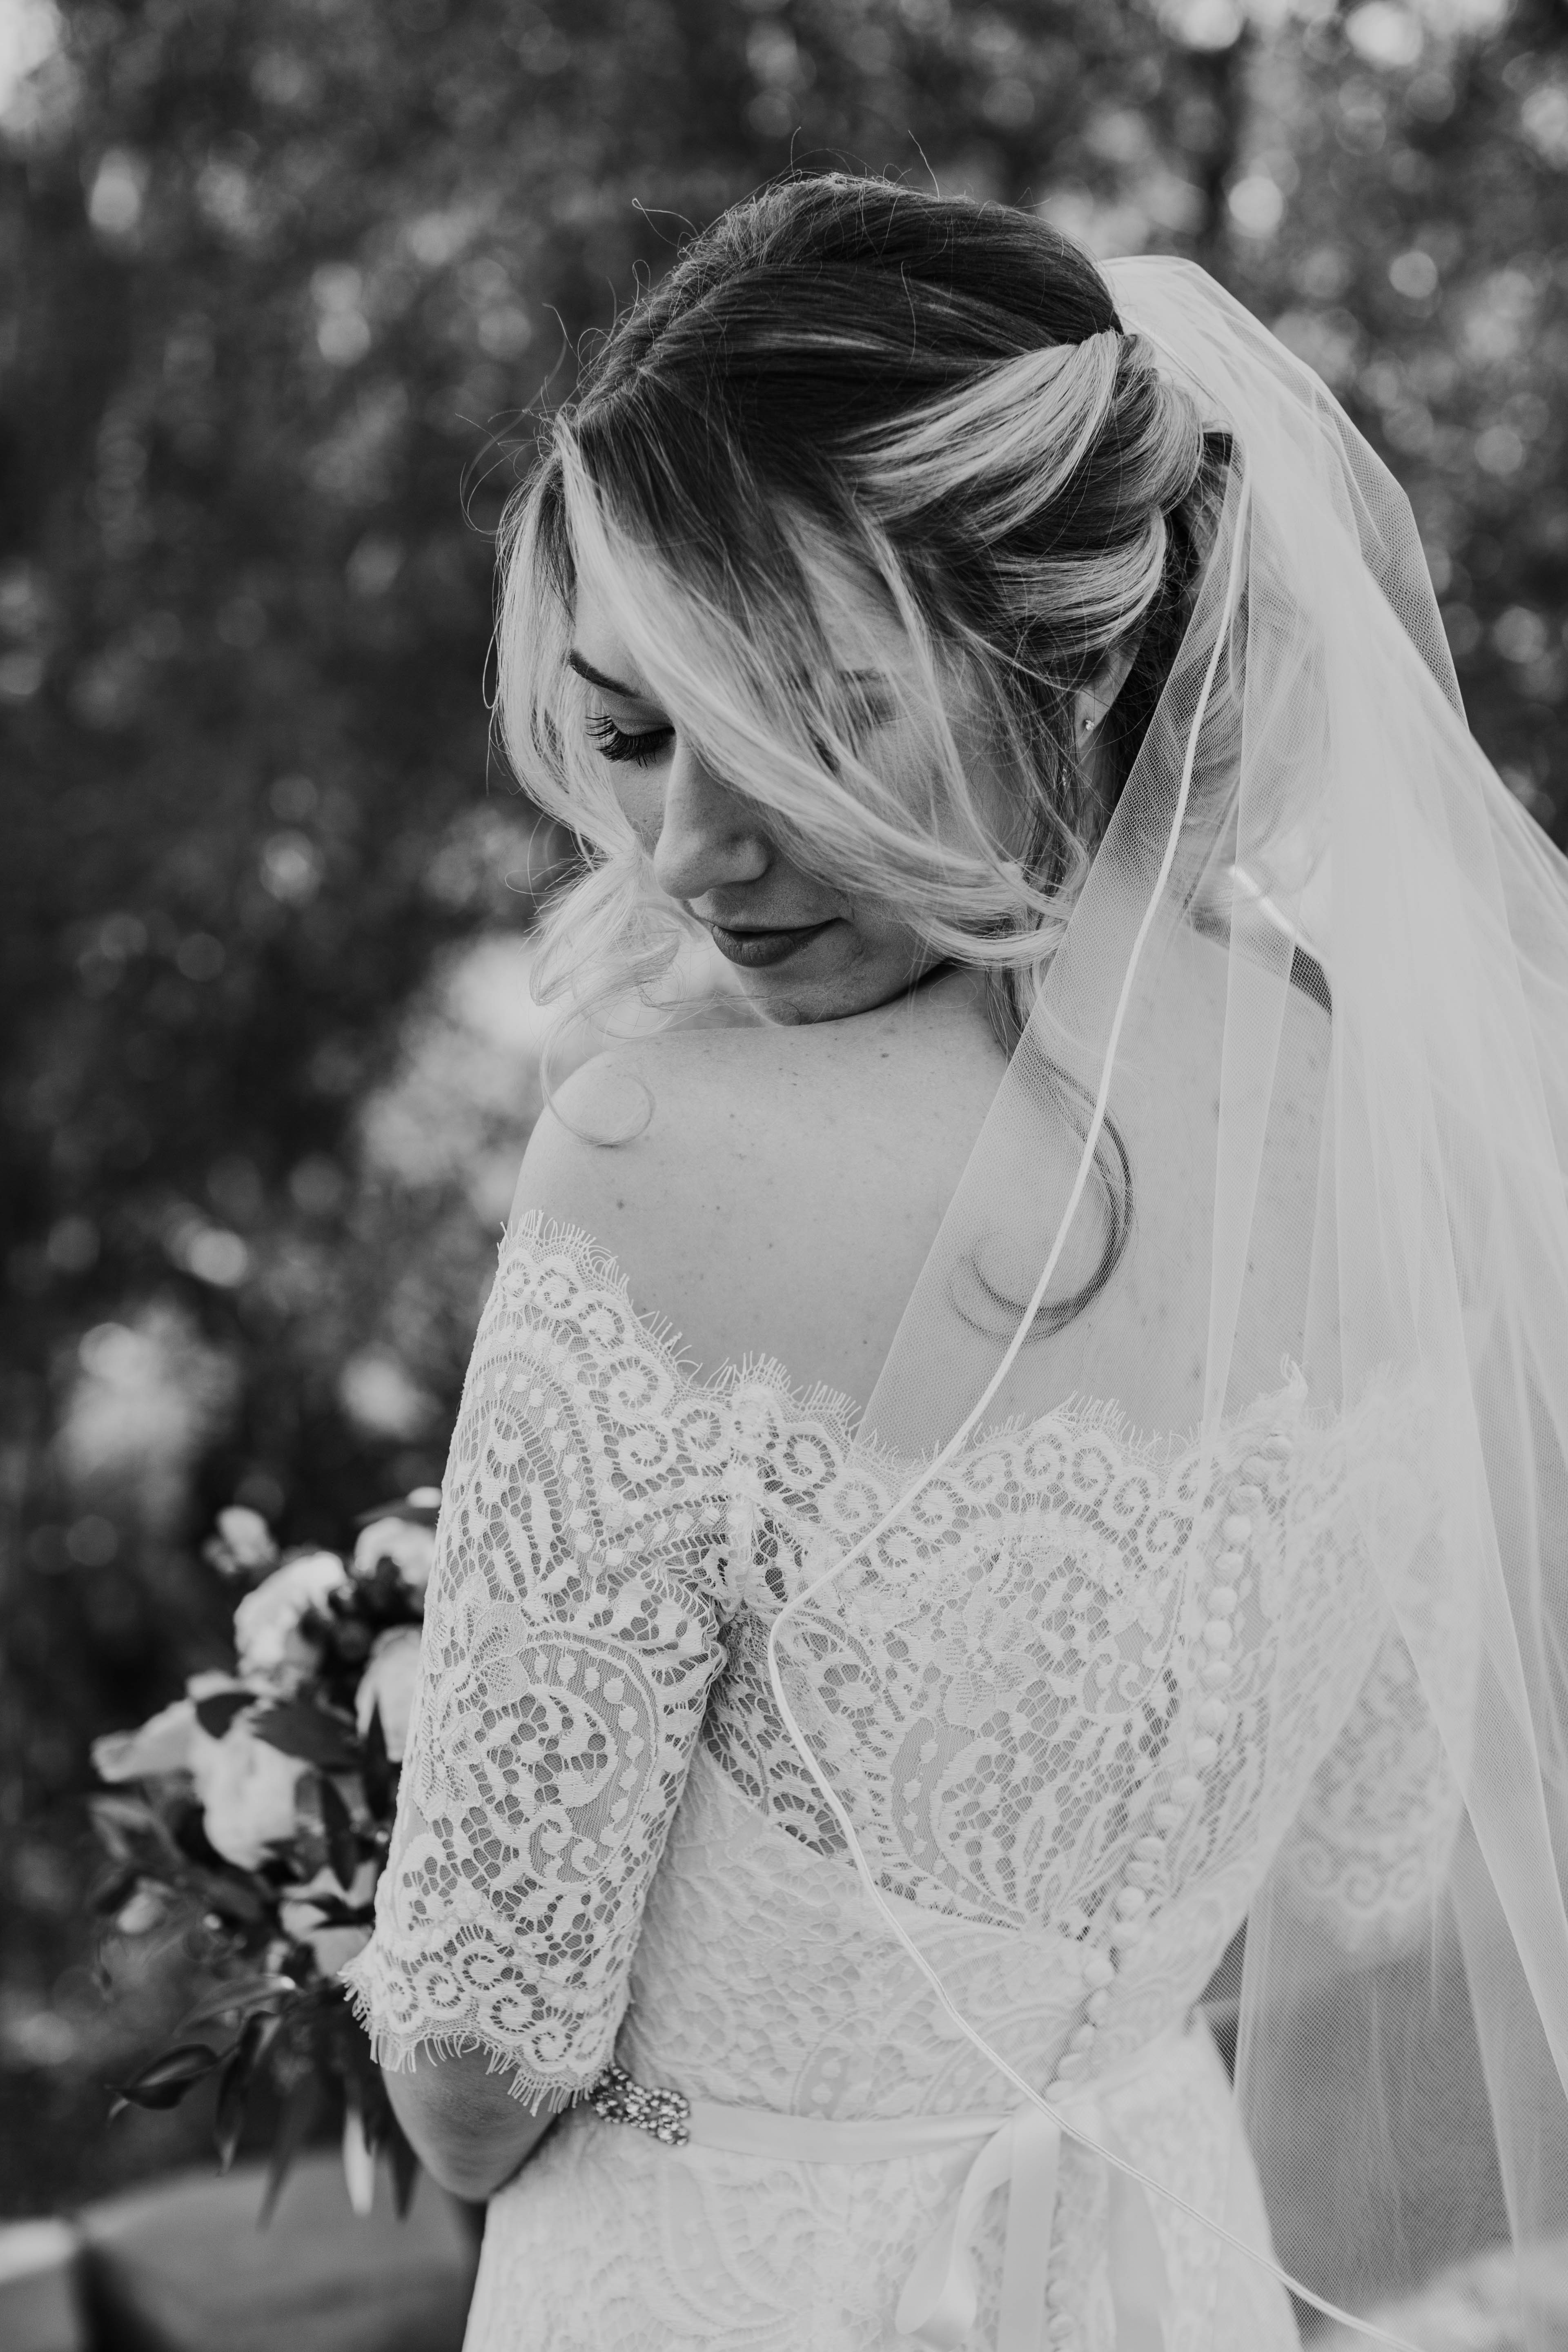 Real Bride Shannon in Savannah | Love and Lace Bridal Salon Bride | Wtoo Savannah Dress |- www.loveandlacebridalsalon.com/blog